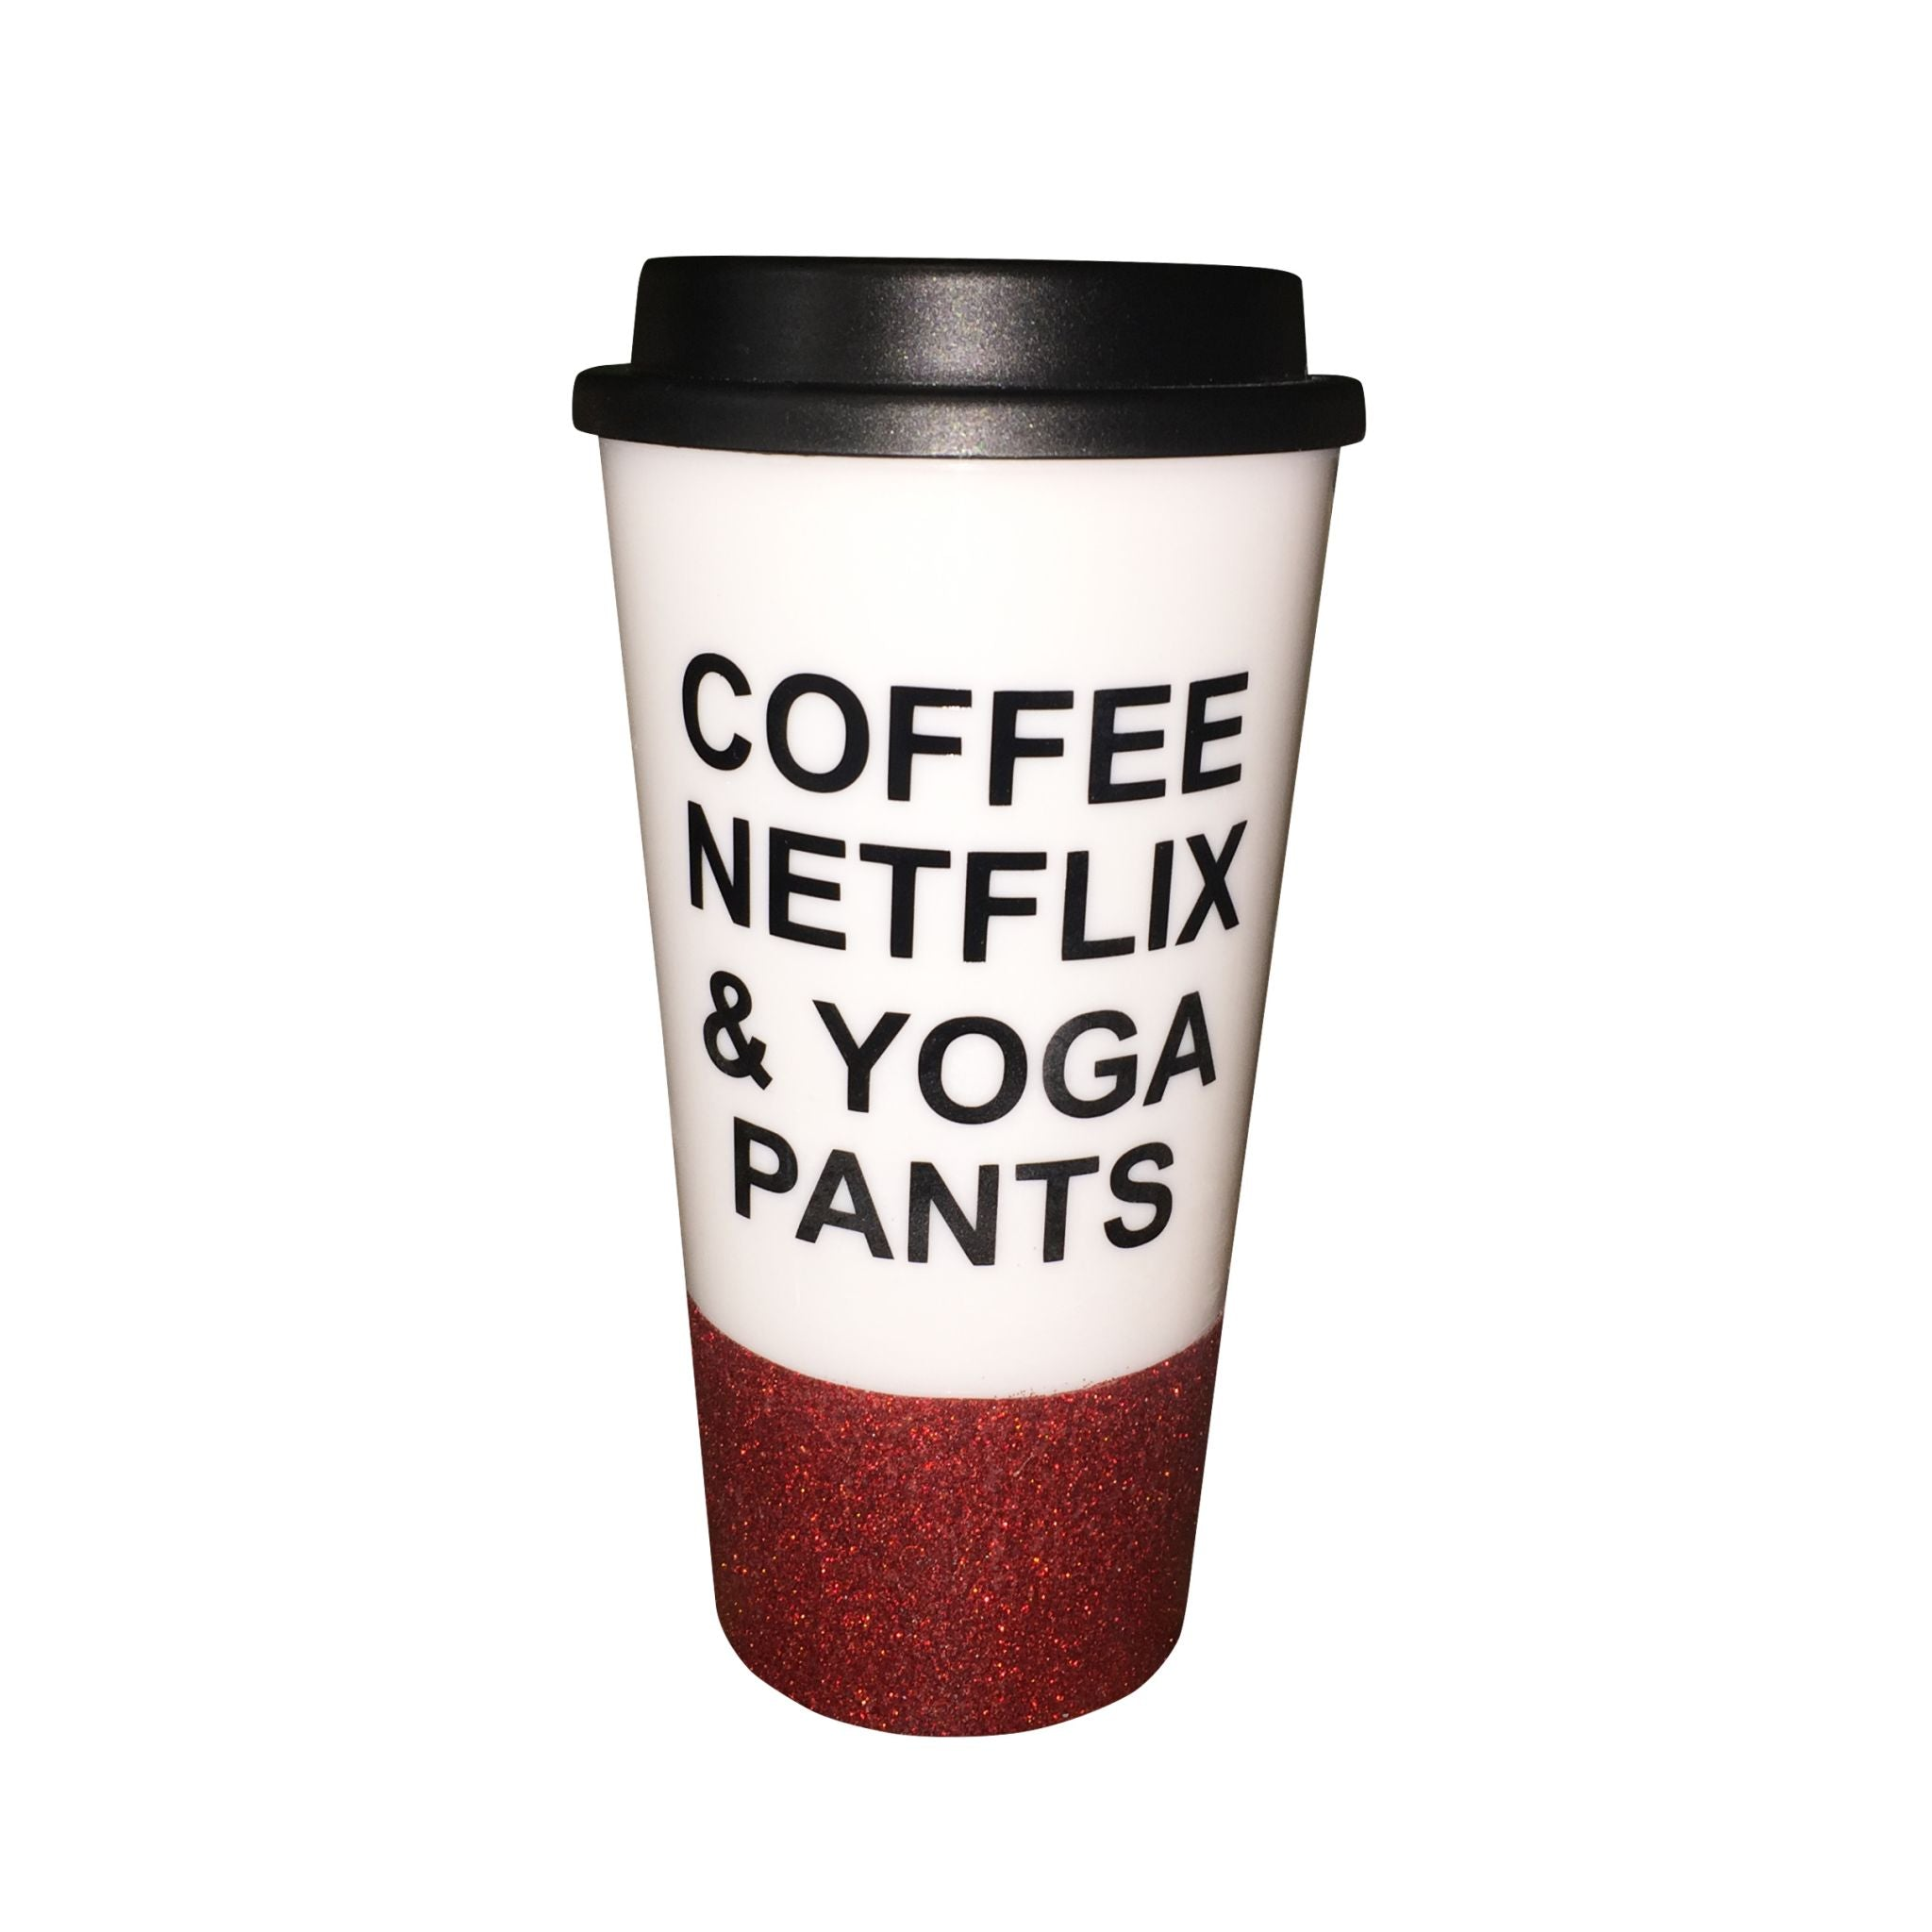 Coffee Netflix Yoga